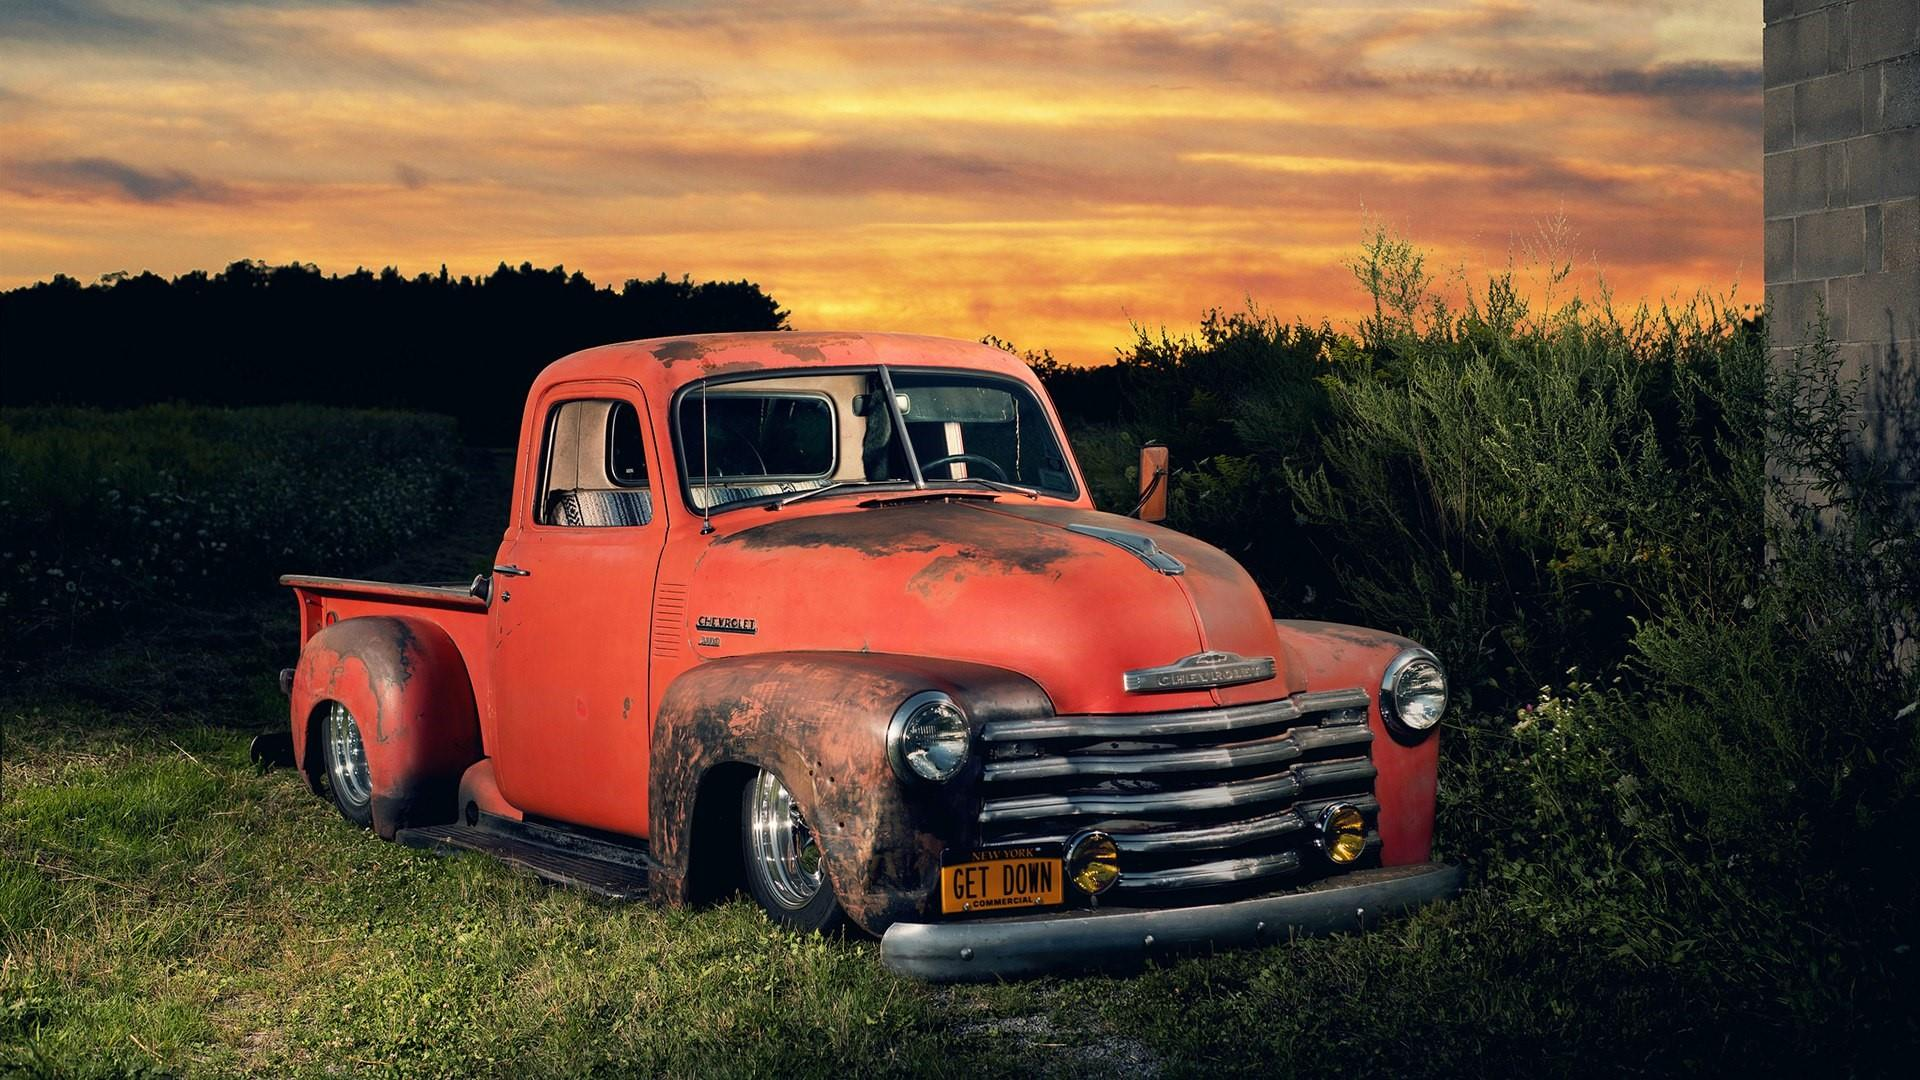 Clic Truck Wallpapers Top Backgrounds Chevy Pickup 2108661 Hd Wallpaper Backgrounds Download